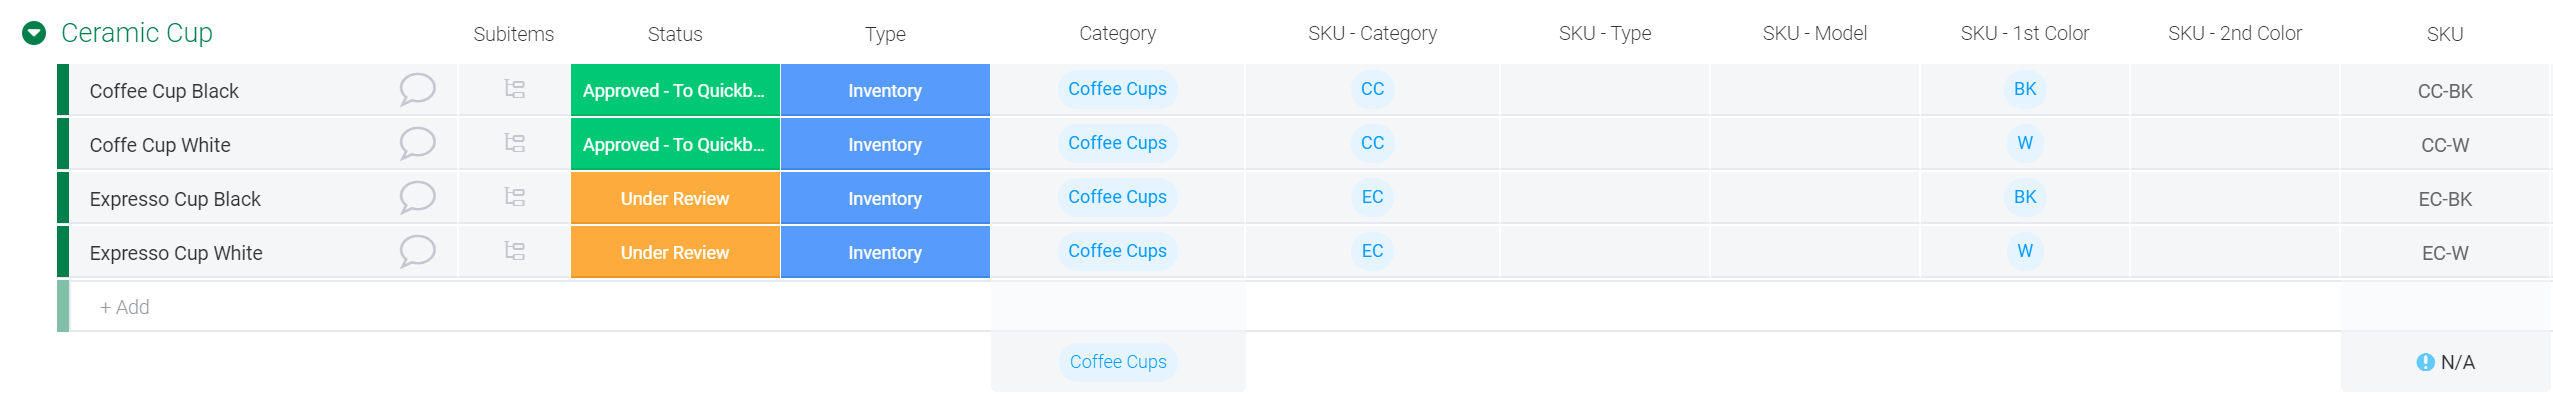 How to create a product catalogue and SKUs in monday.com - SKUs